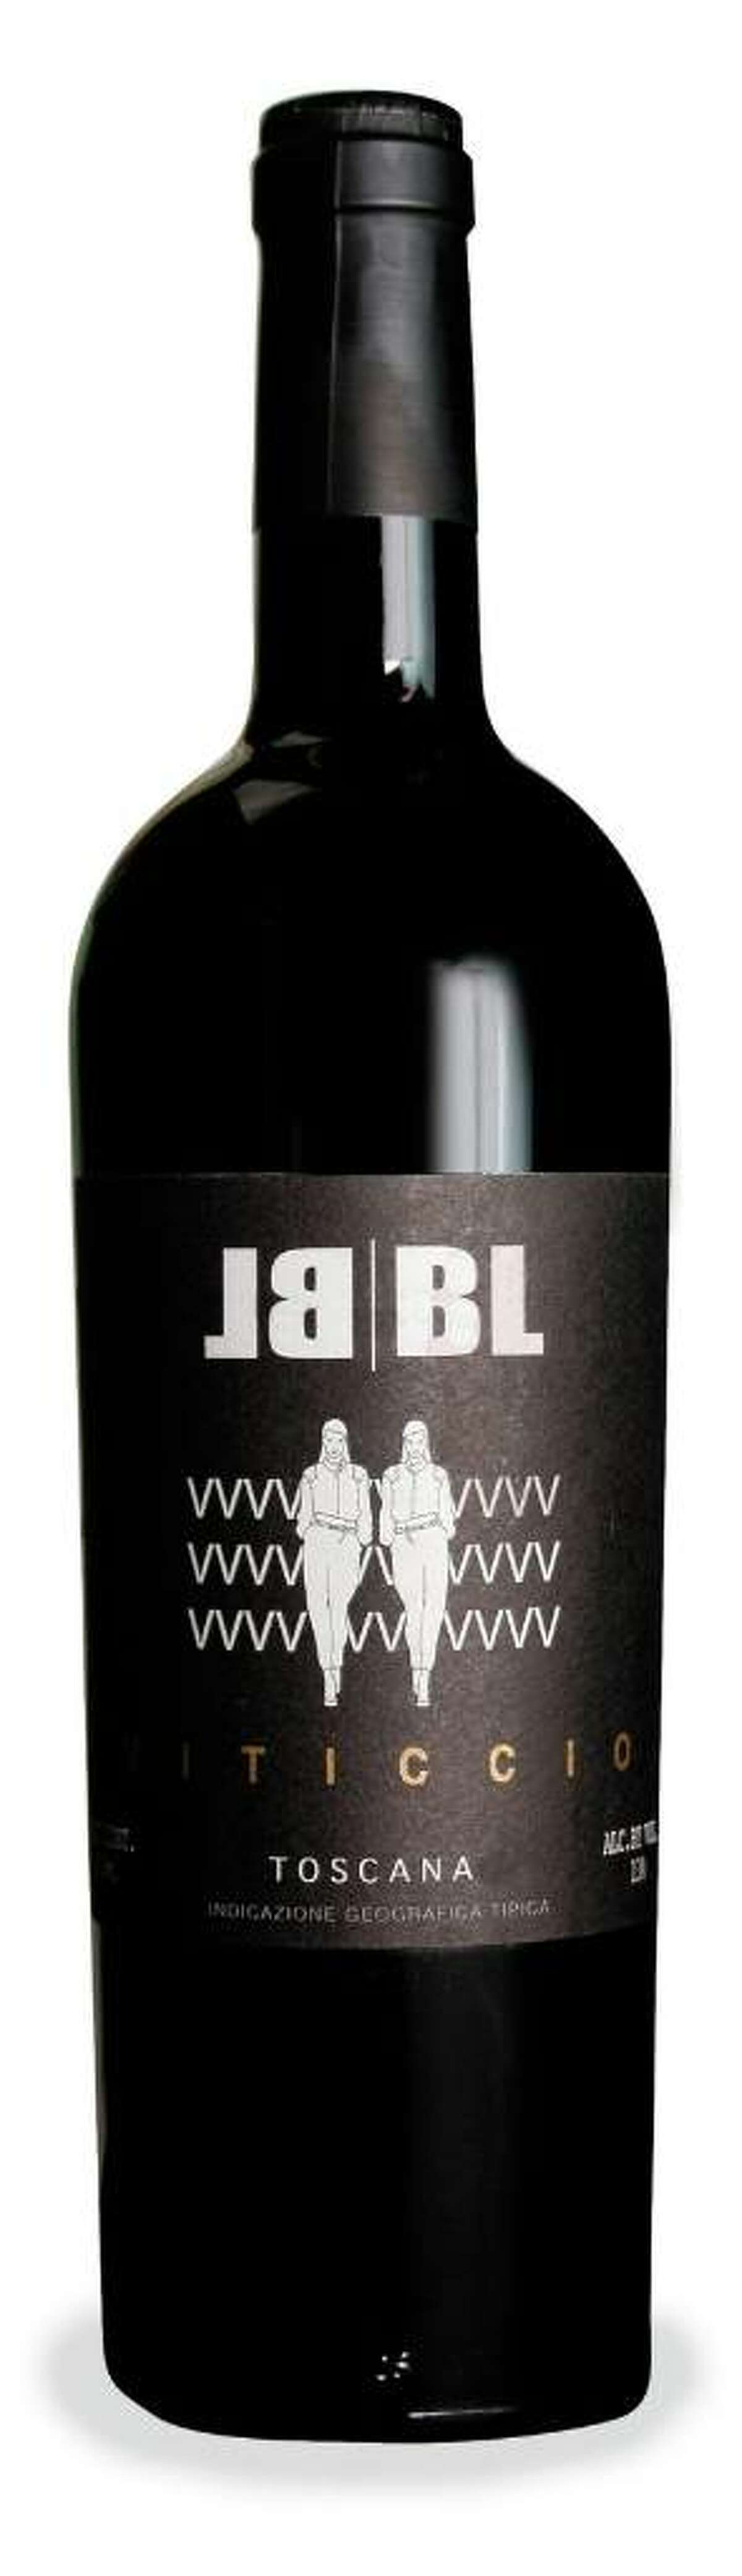 Blake Leonard and Beatrice Landini have launched a wine business and their first wine, Bl BL, a varietal wine, will be introduced on Friday.